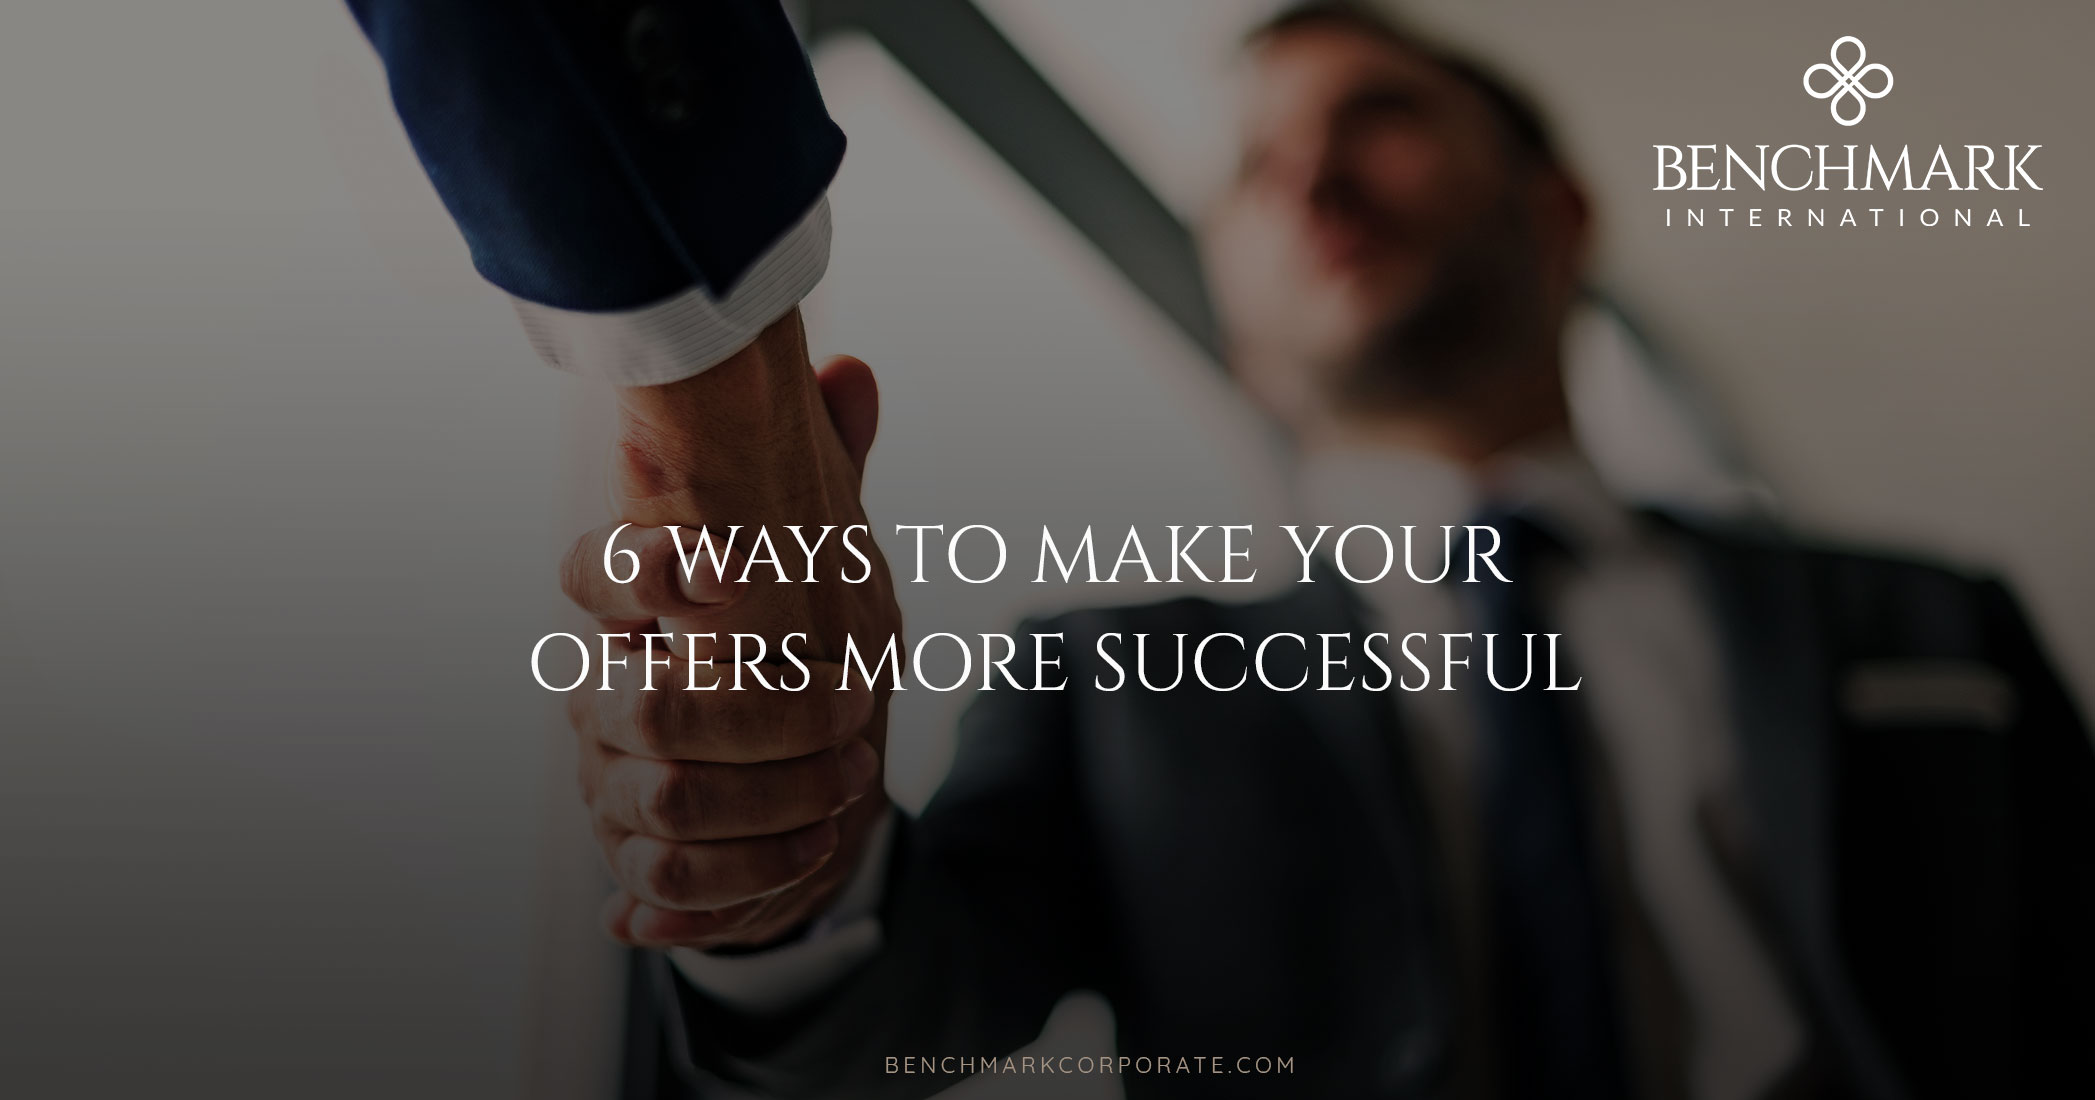 6 Ways to Make Your Offers More Successful